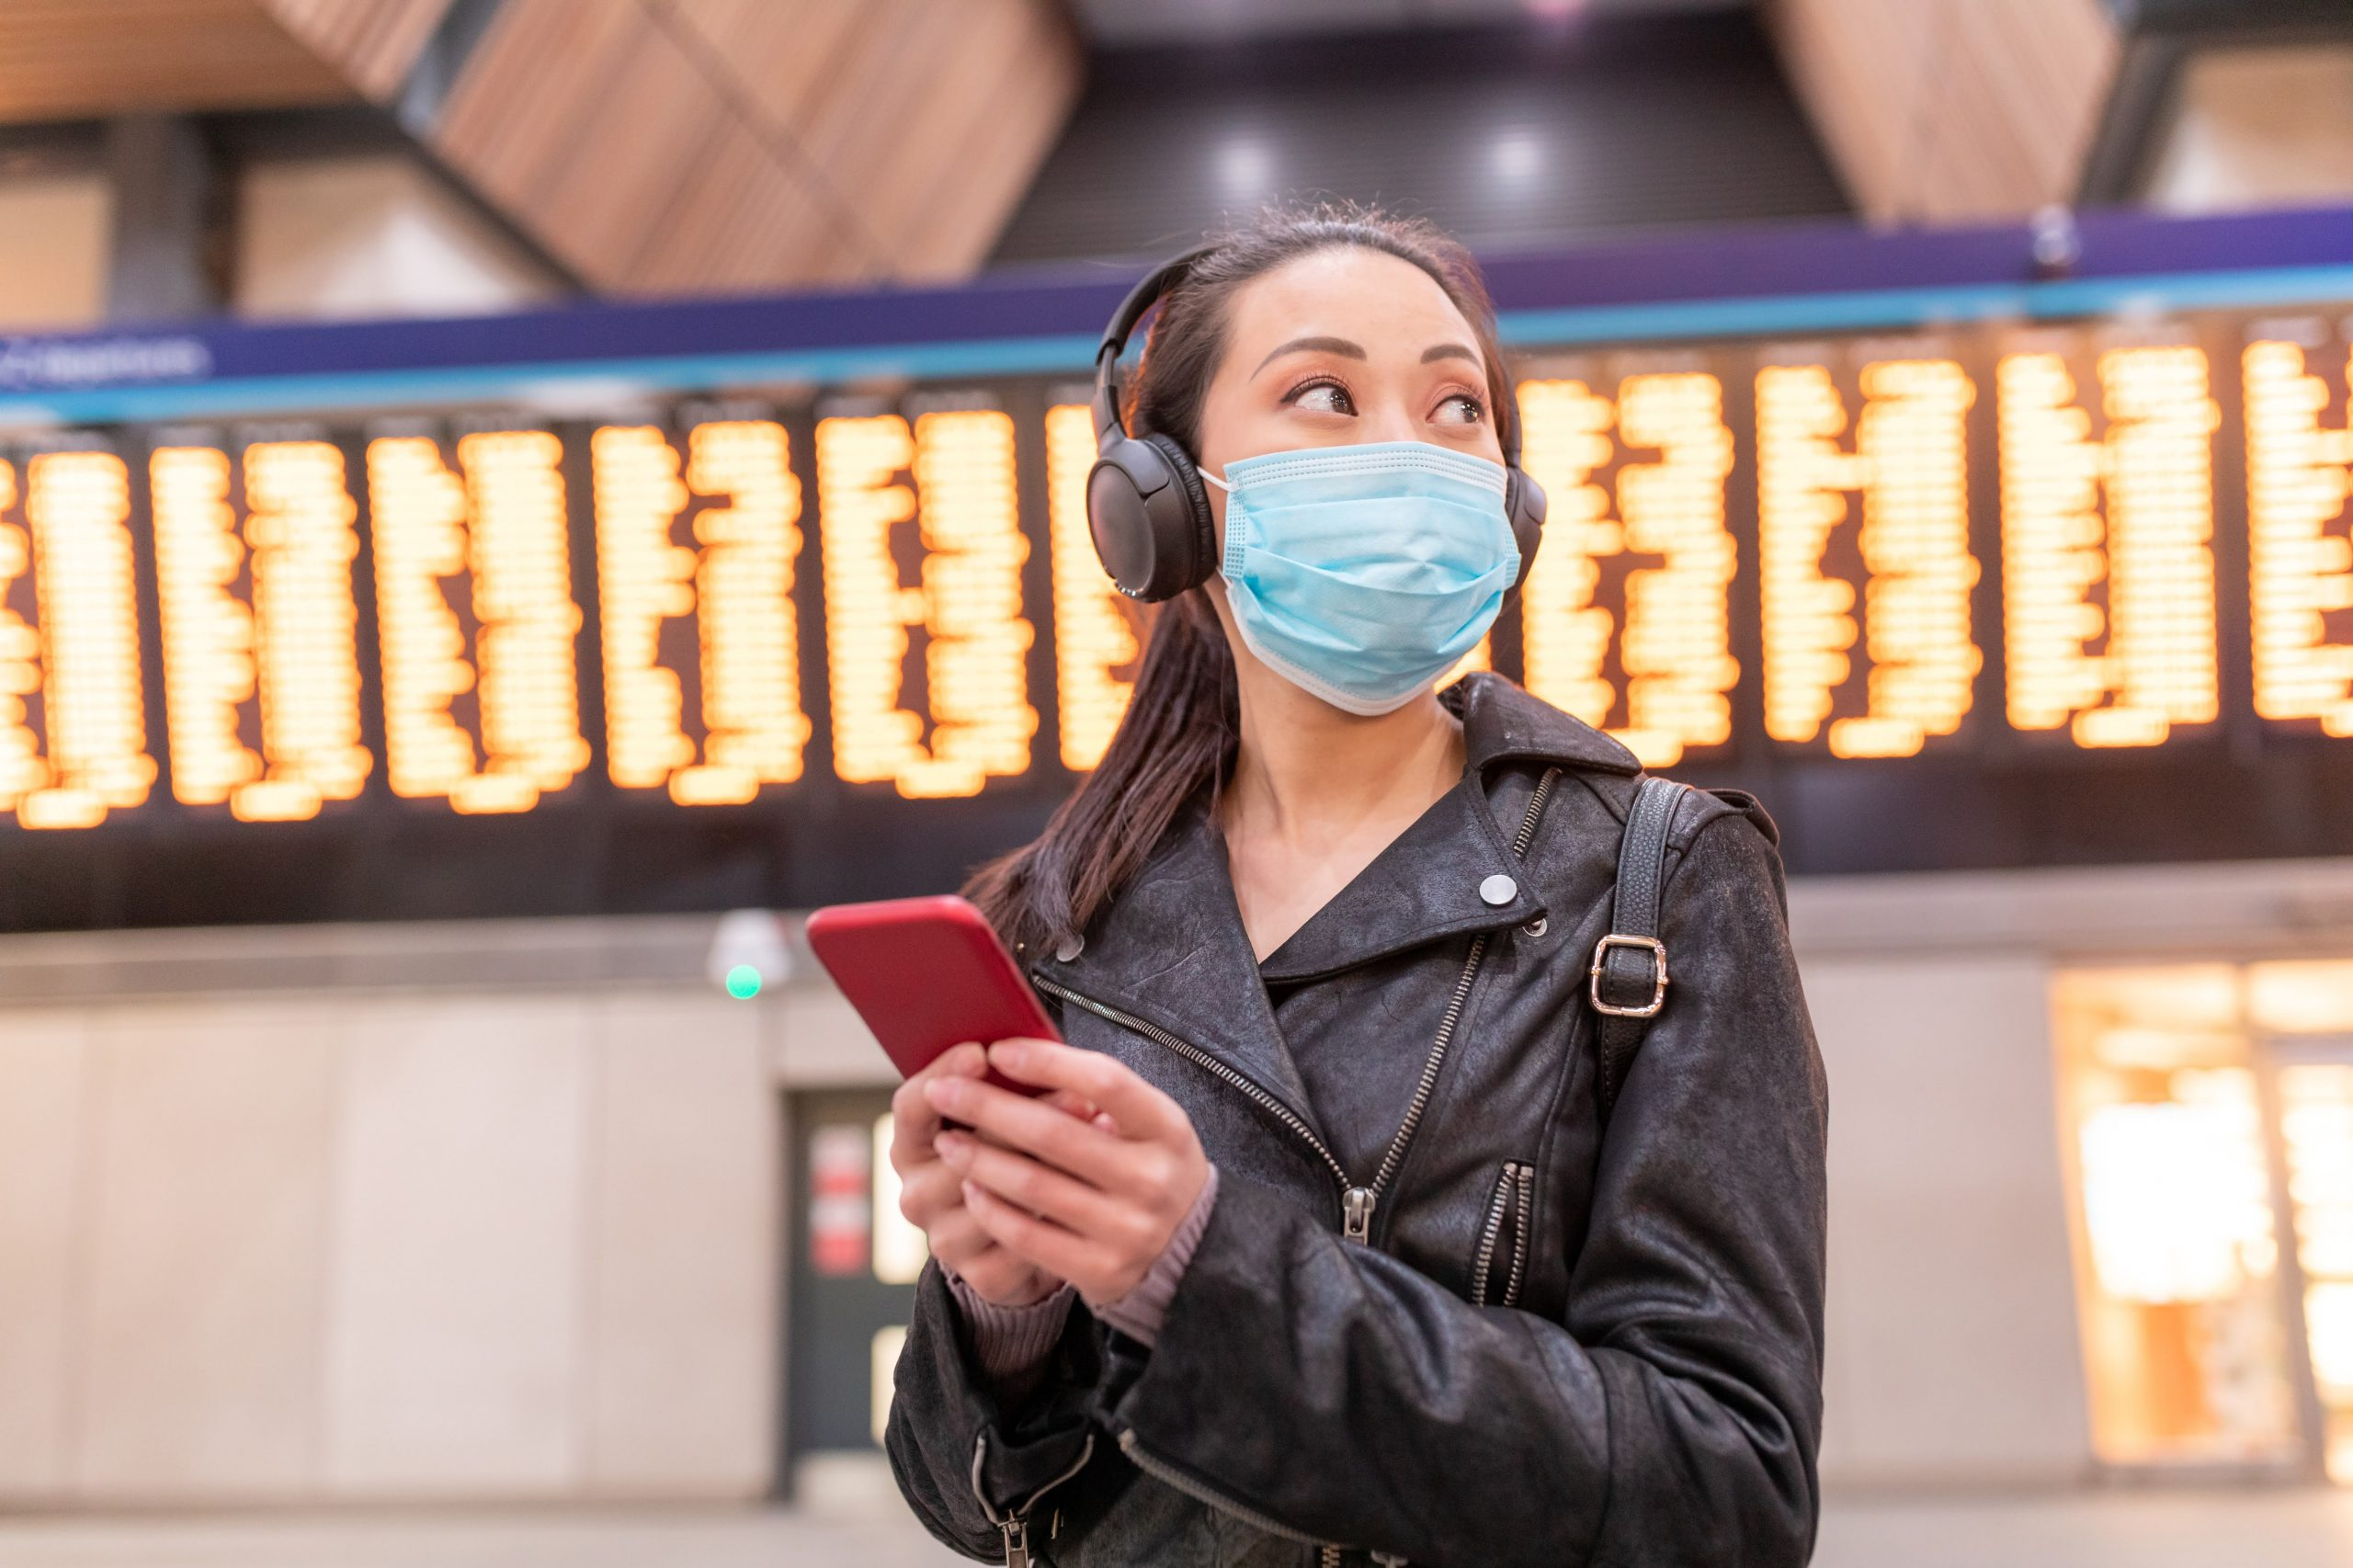 Chinese woman wearing face mask at train station and maintaining social distance - young asian woman using smartphone and looking away with departure arrivals board behind